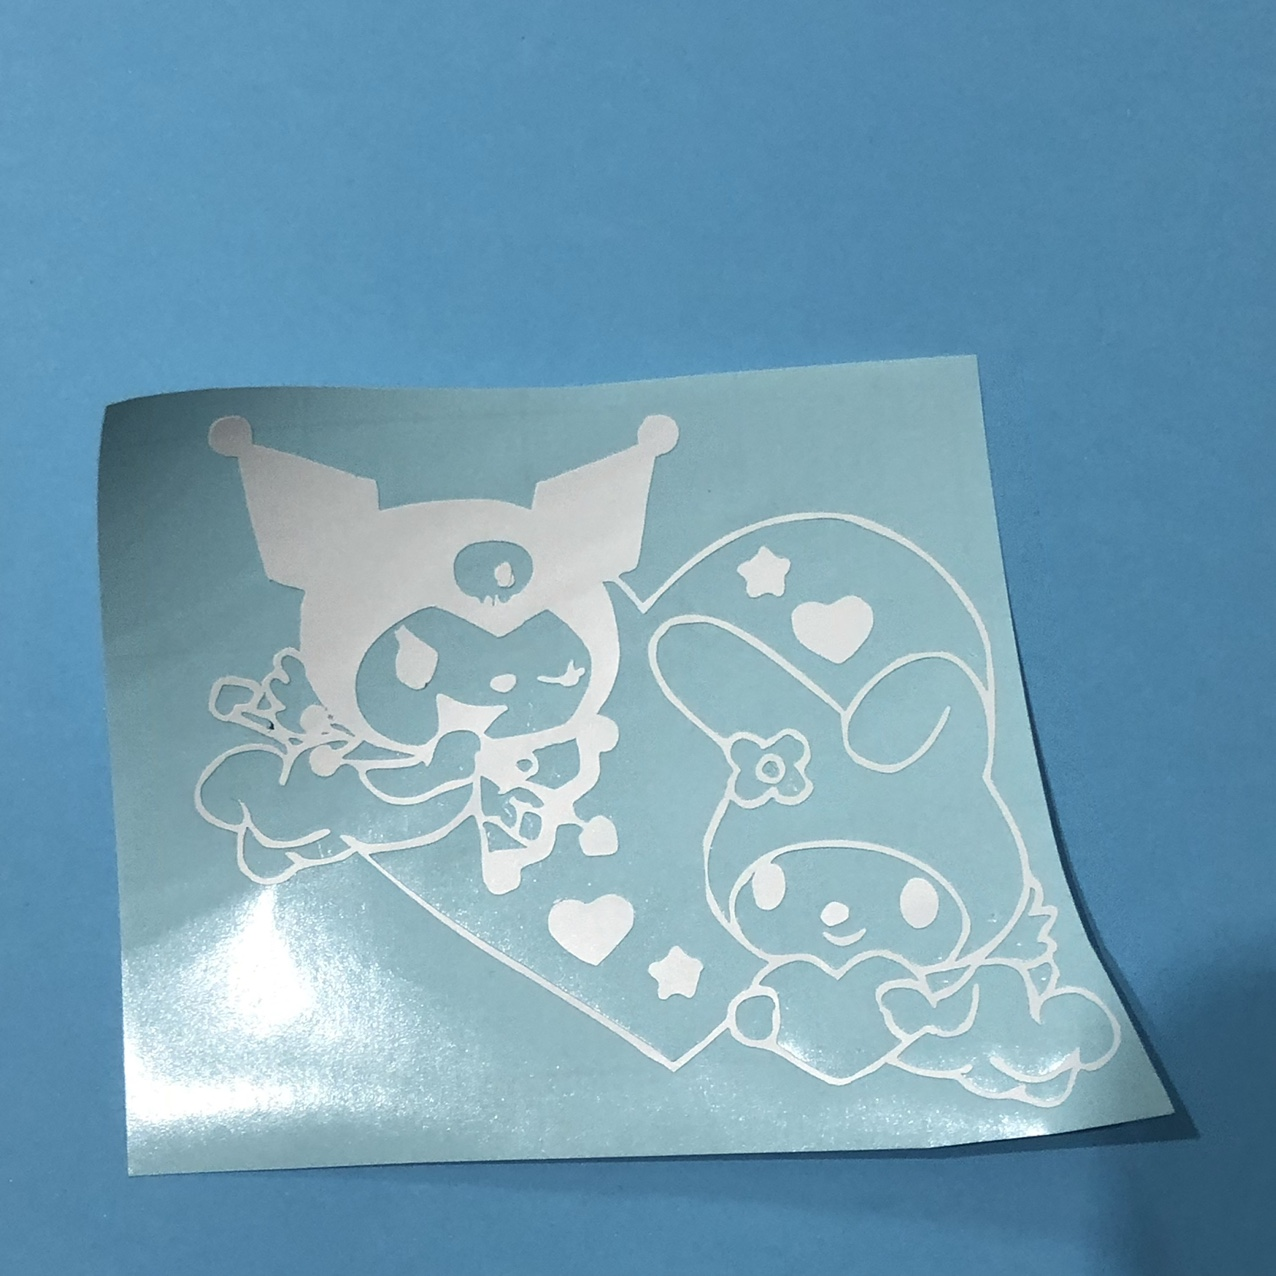 Product Image 1 - -Kuromi and My Melody decal -size: